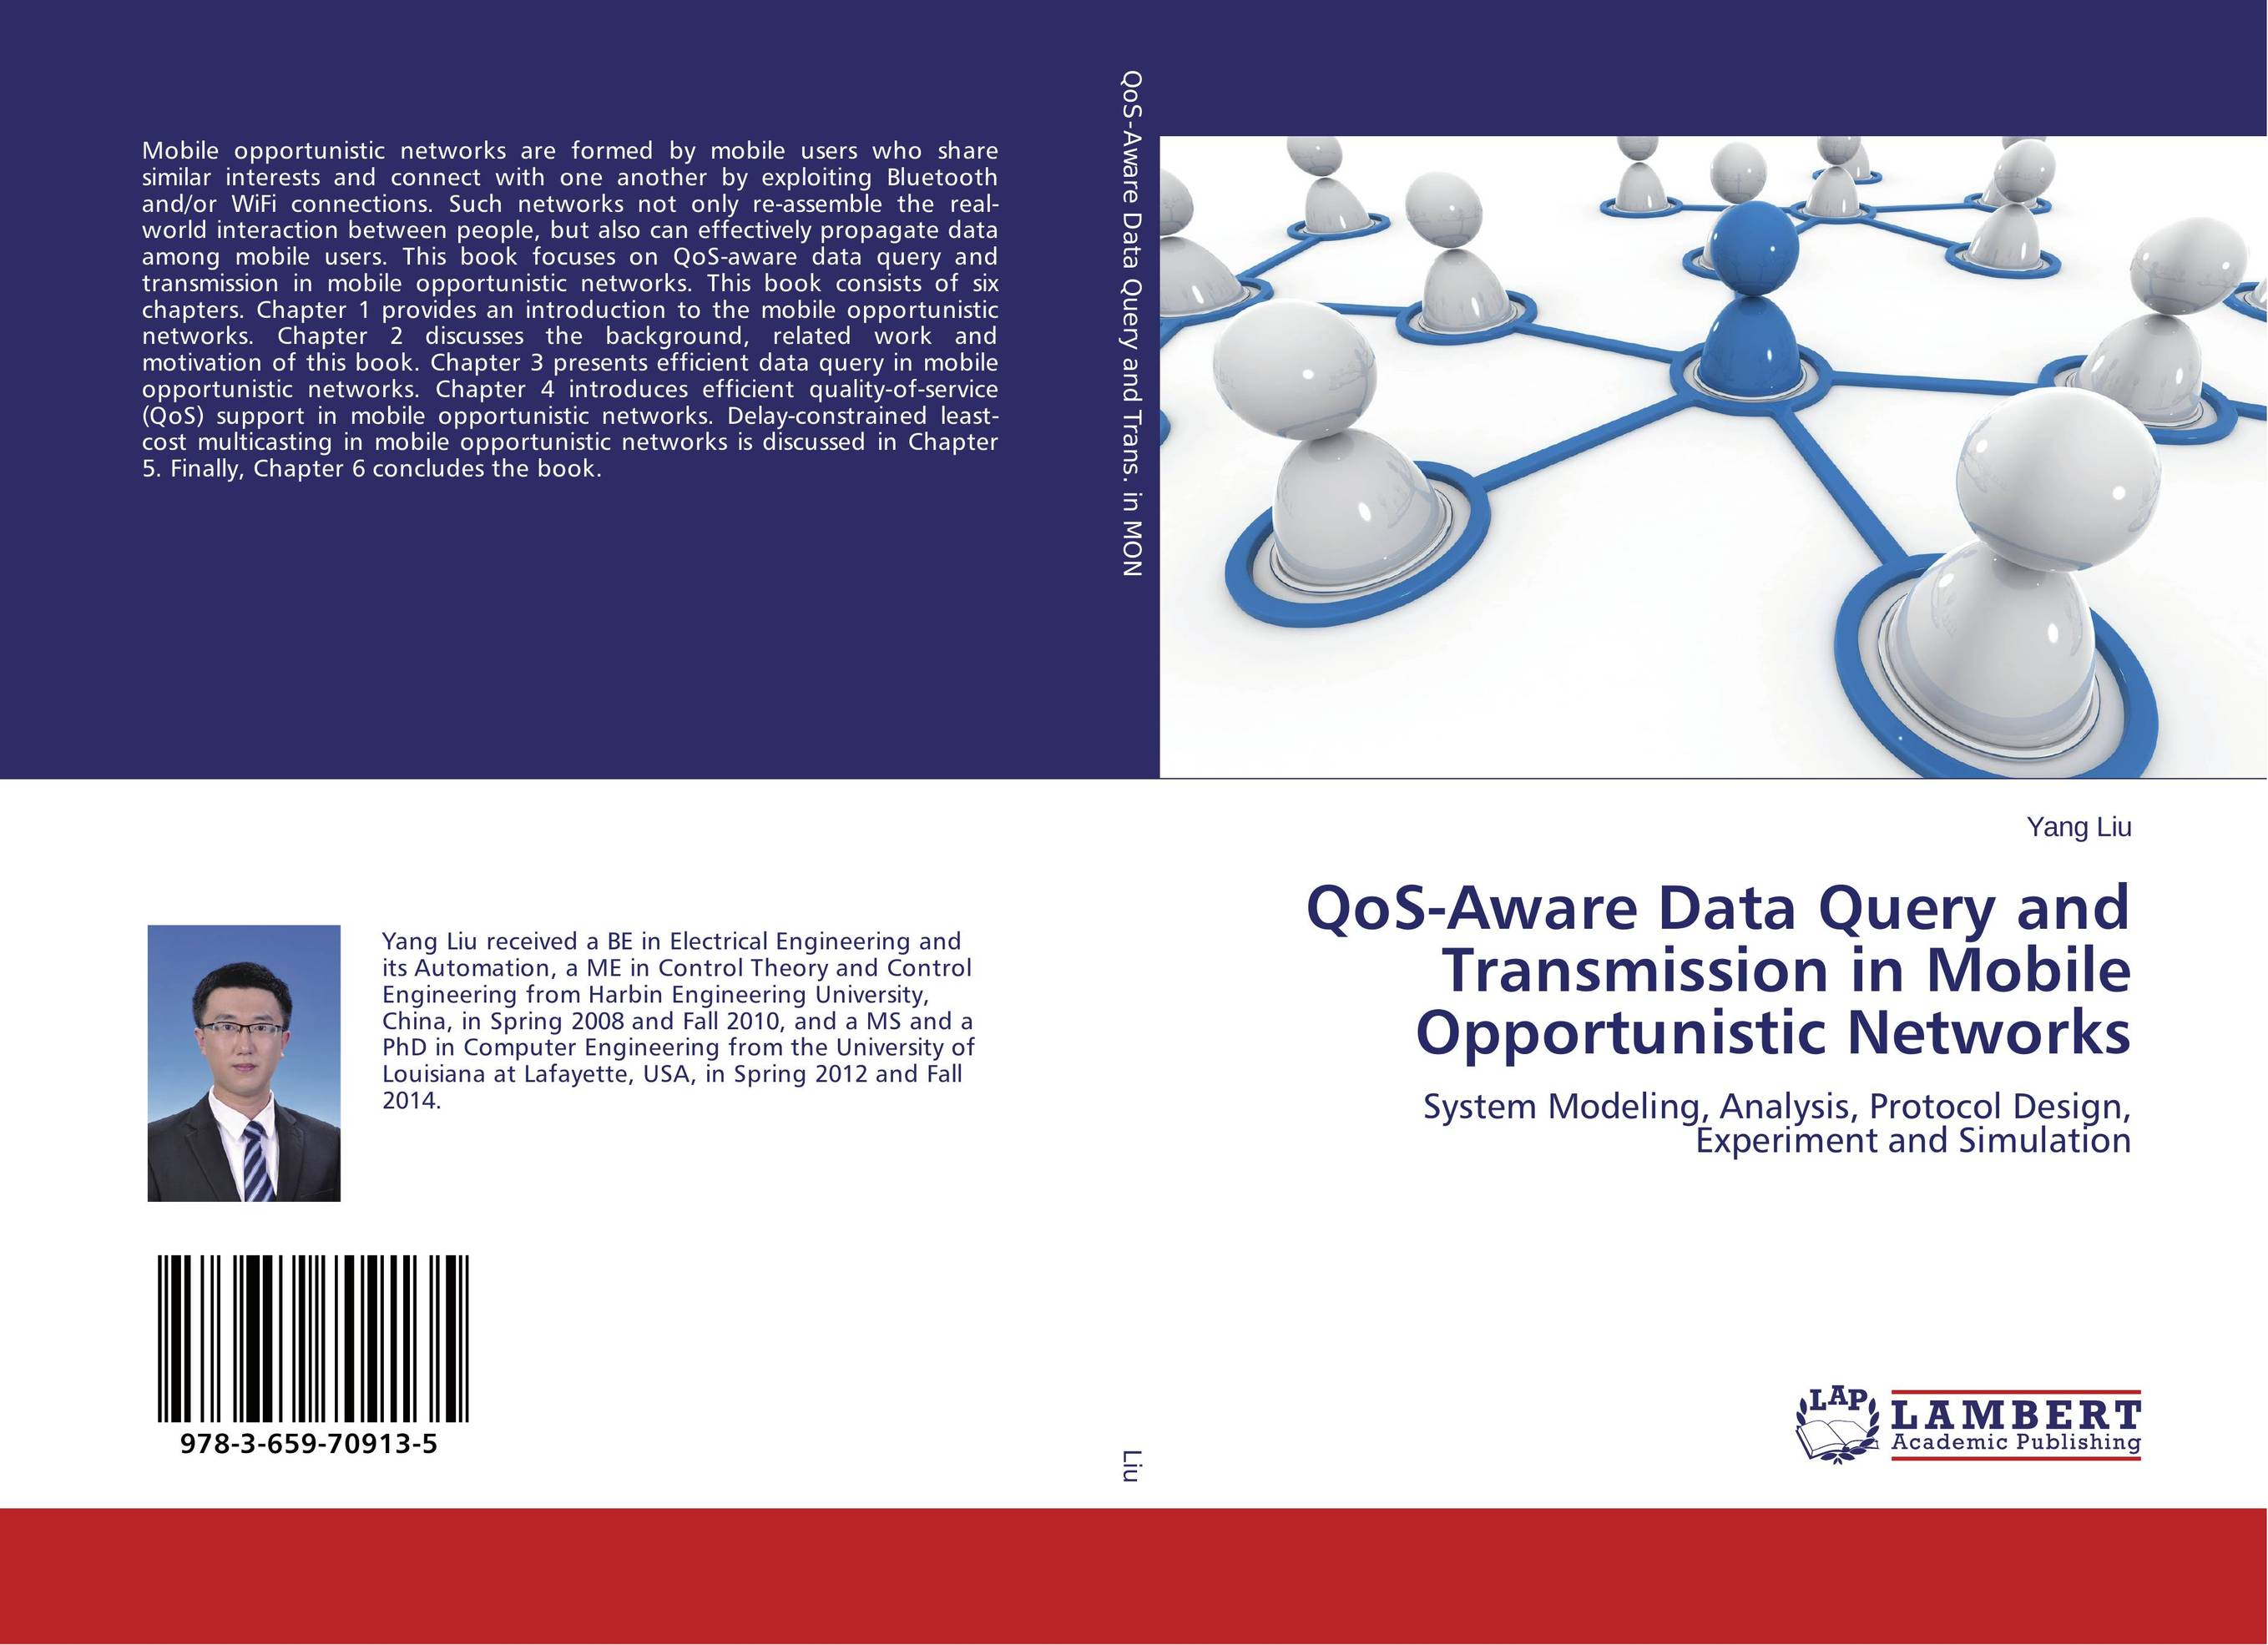 QoS-Aware Data Query and Transmission in Mobile Opportunistic Networks efficient recovery mechanisms over igp and manet networks